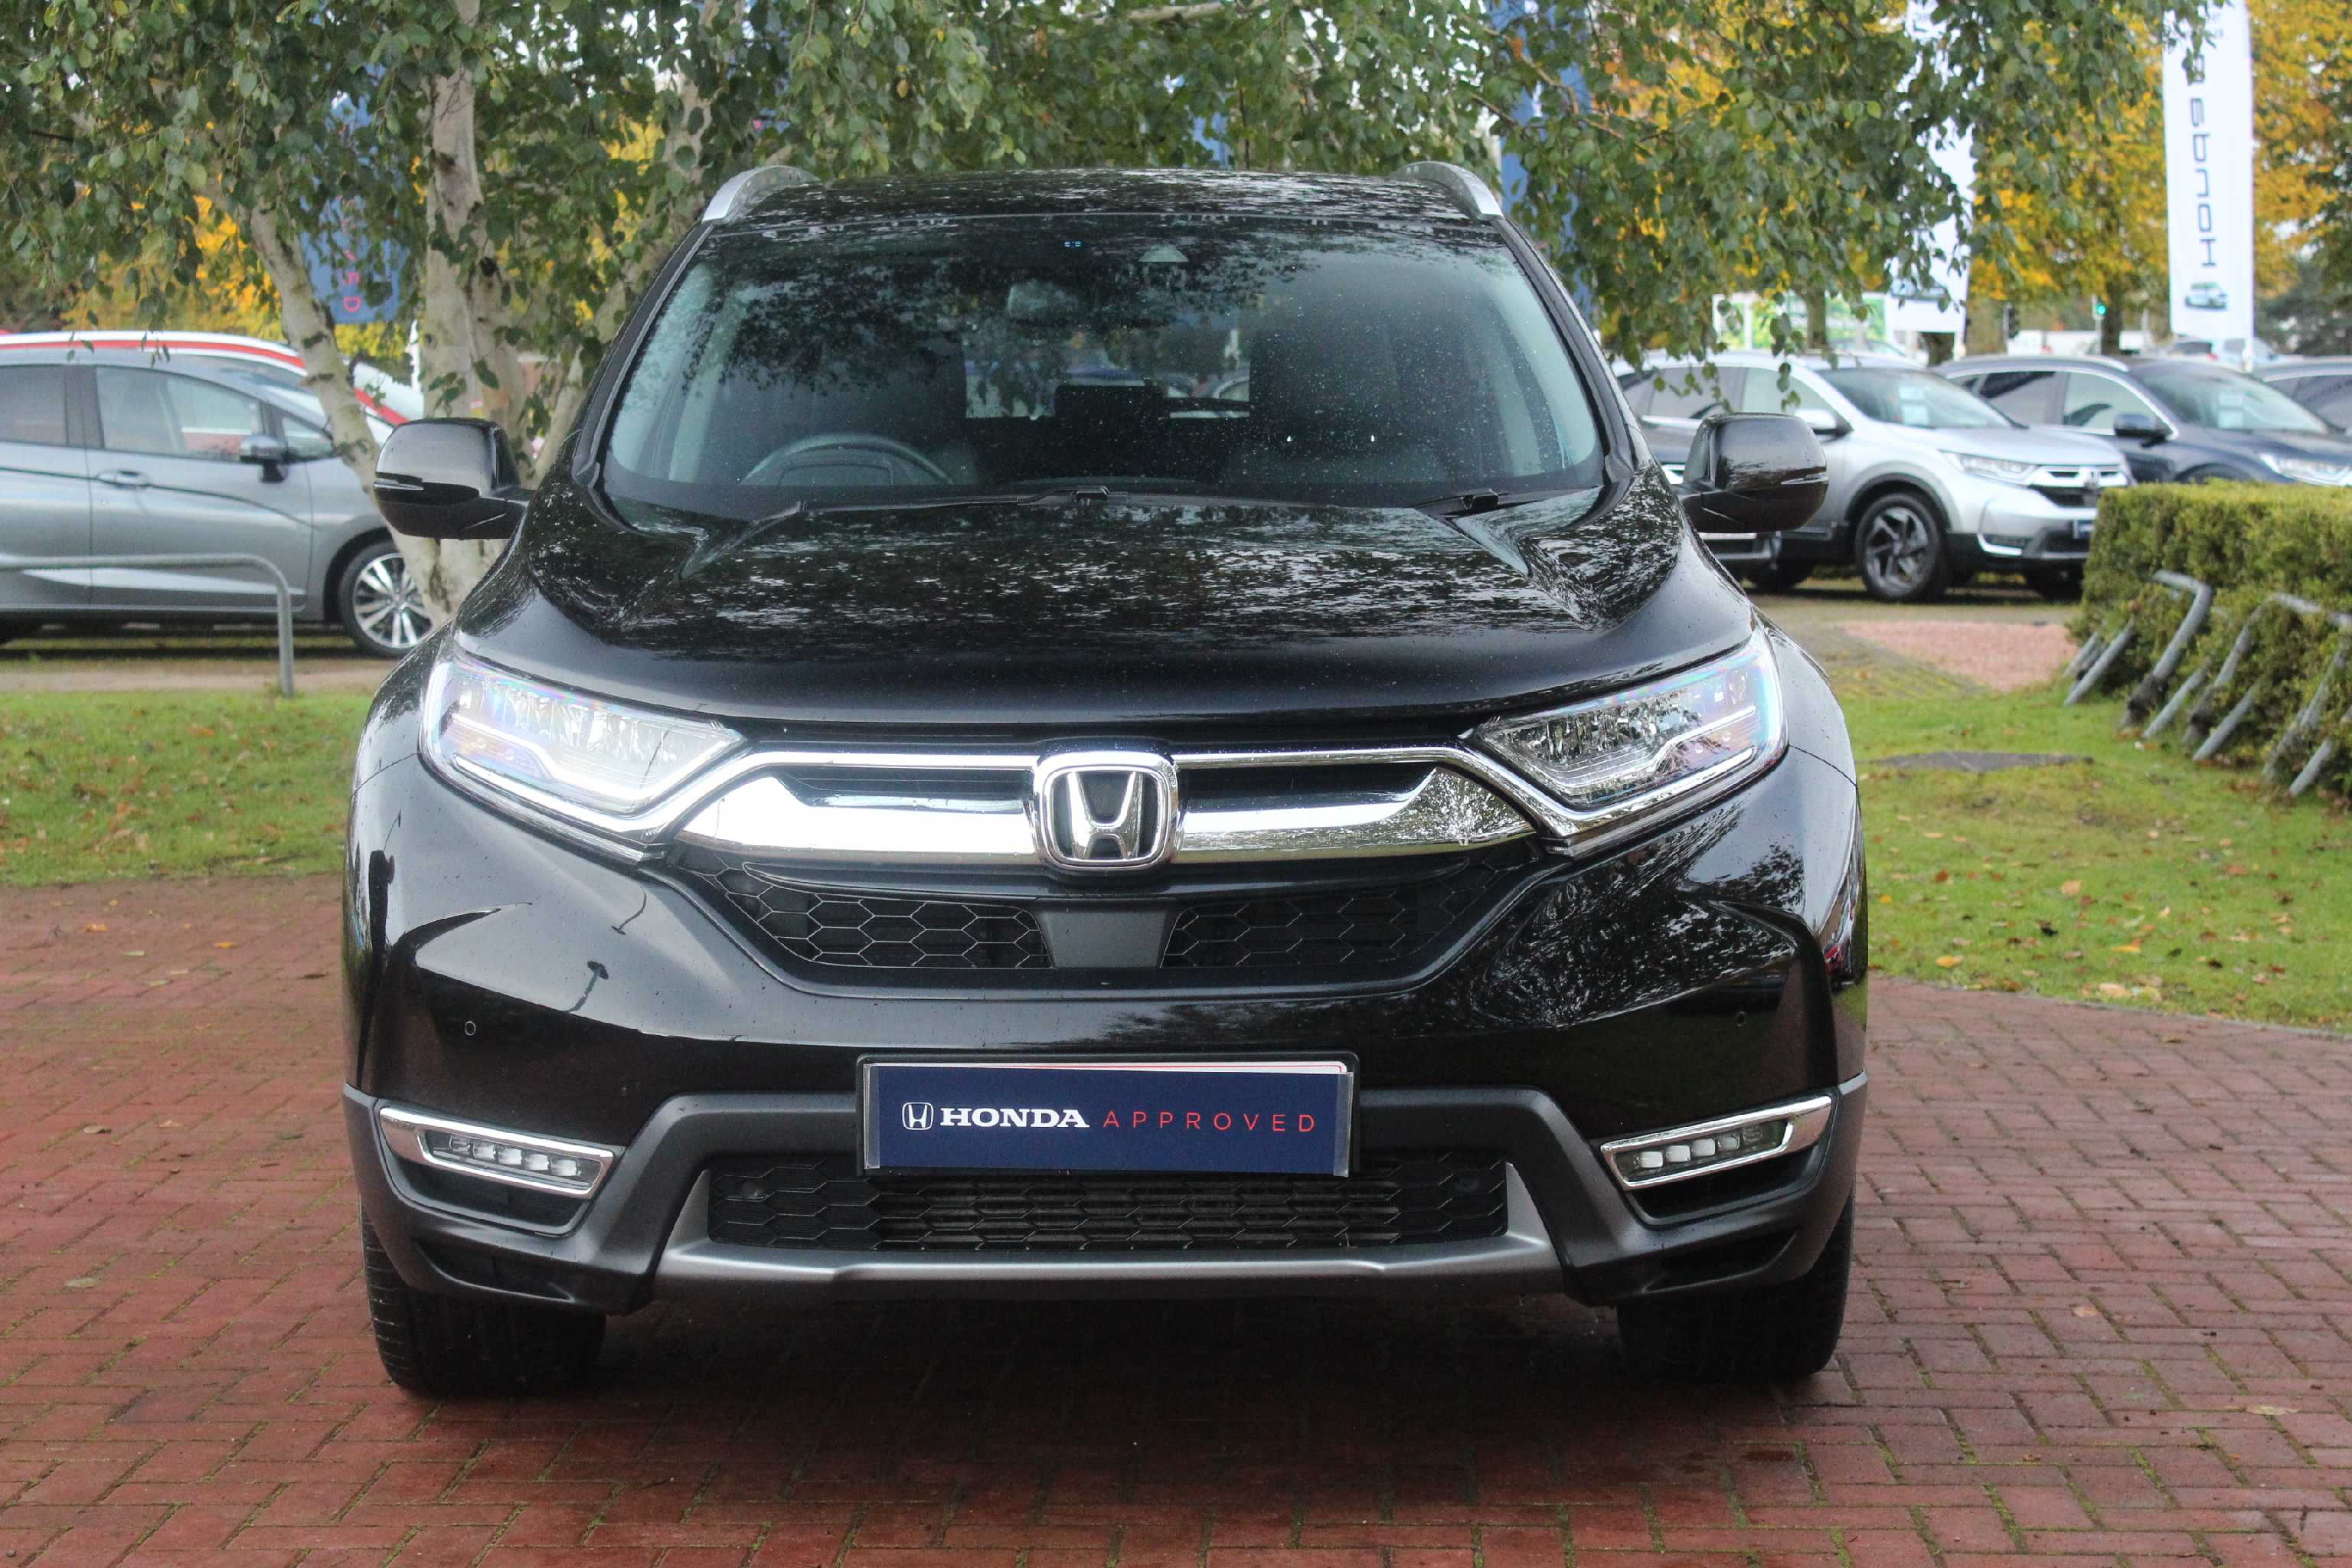 CR-V 1.5 VTEC Turbo EX 5dr CVT